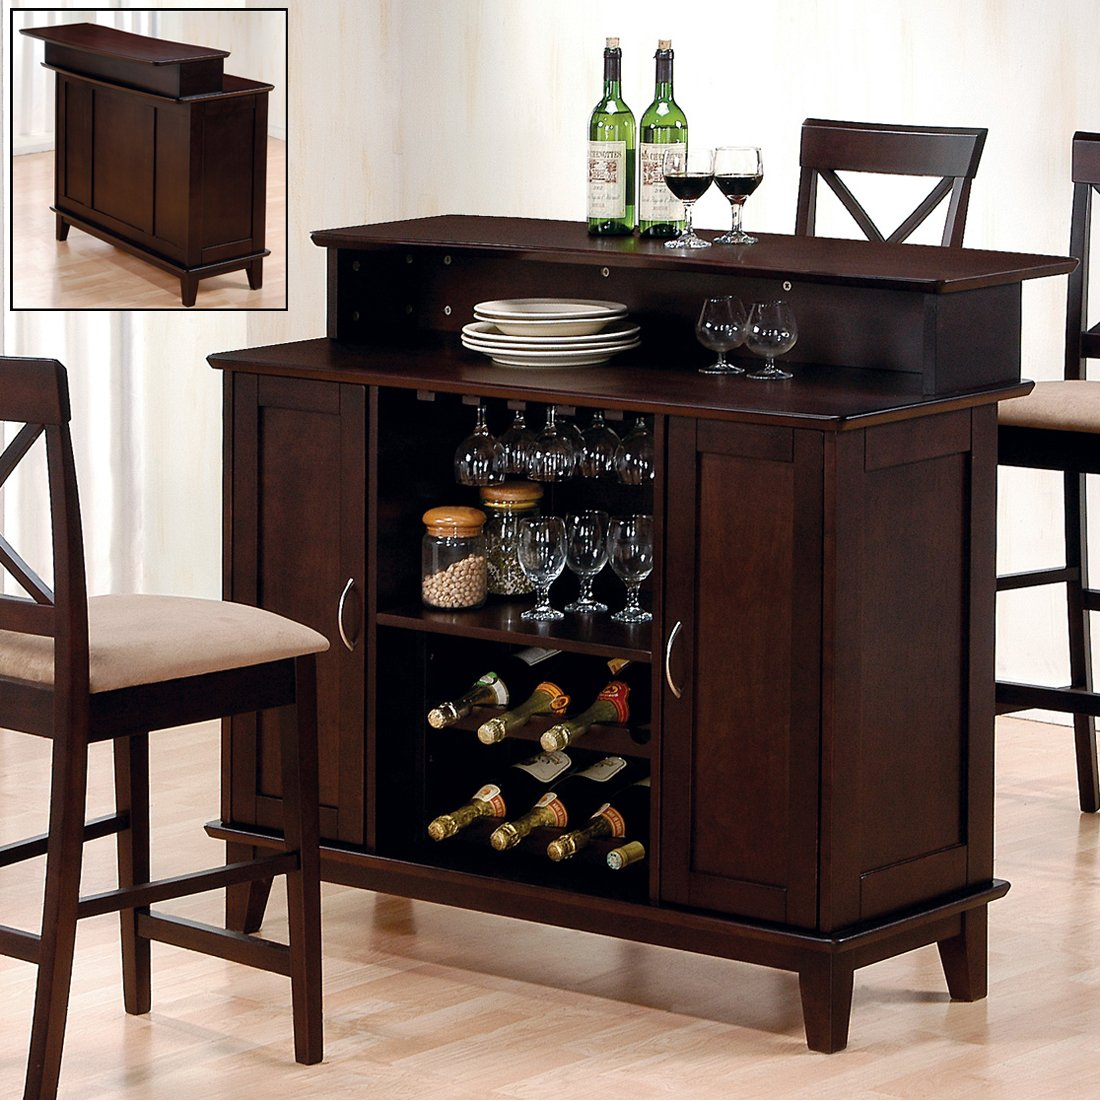 Small bar furniture for apartment best decor things for Small furniture